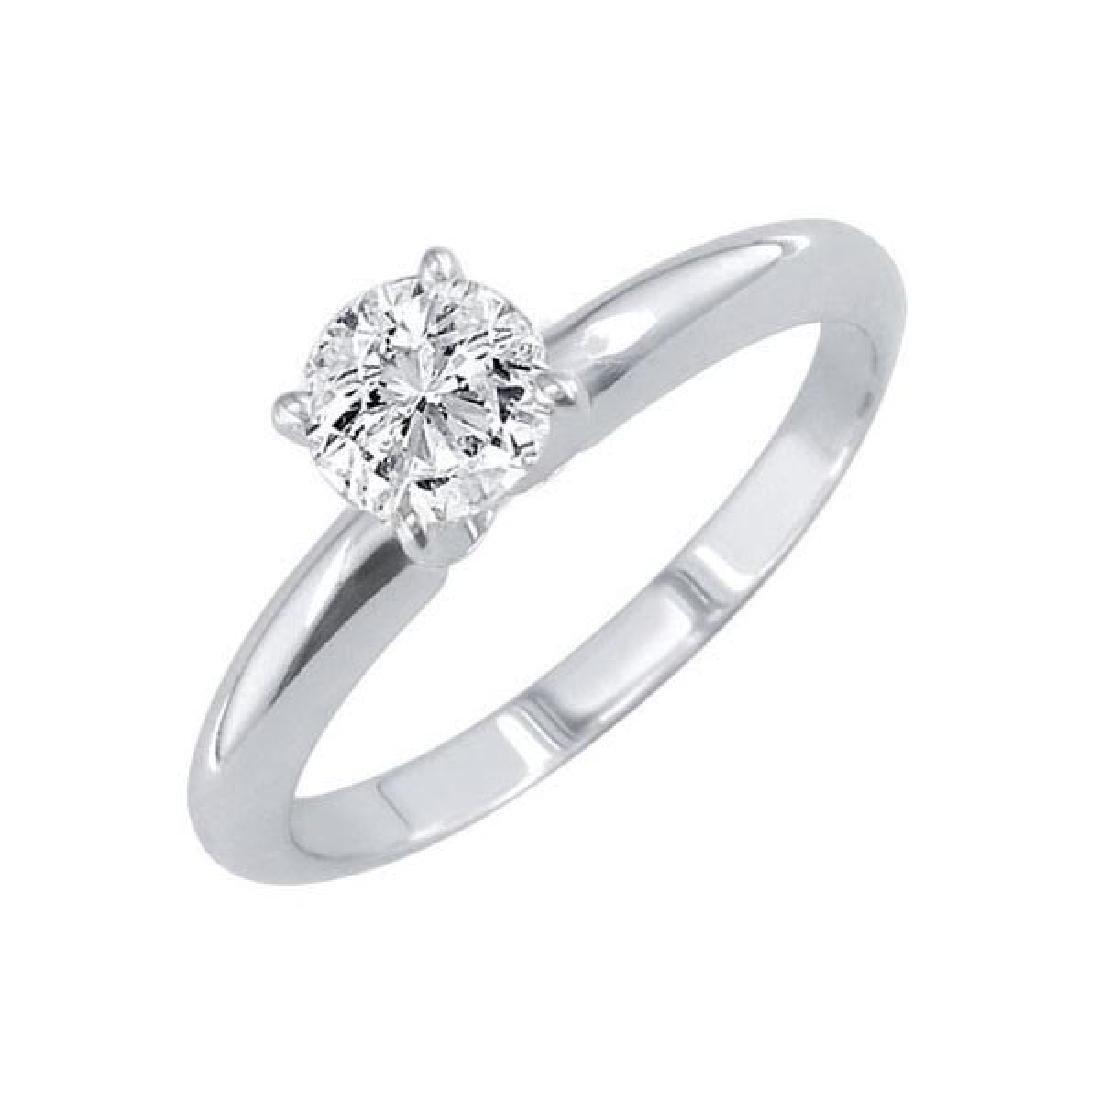 Certified 1.01 CTW Round Diamond Solitaire 14k Ring F/S